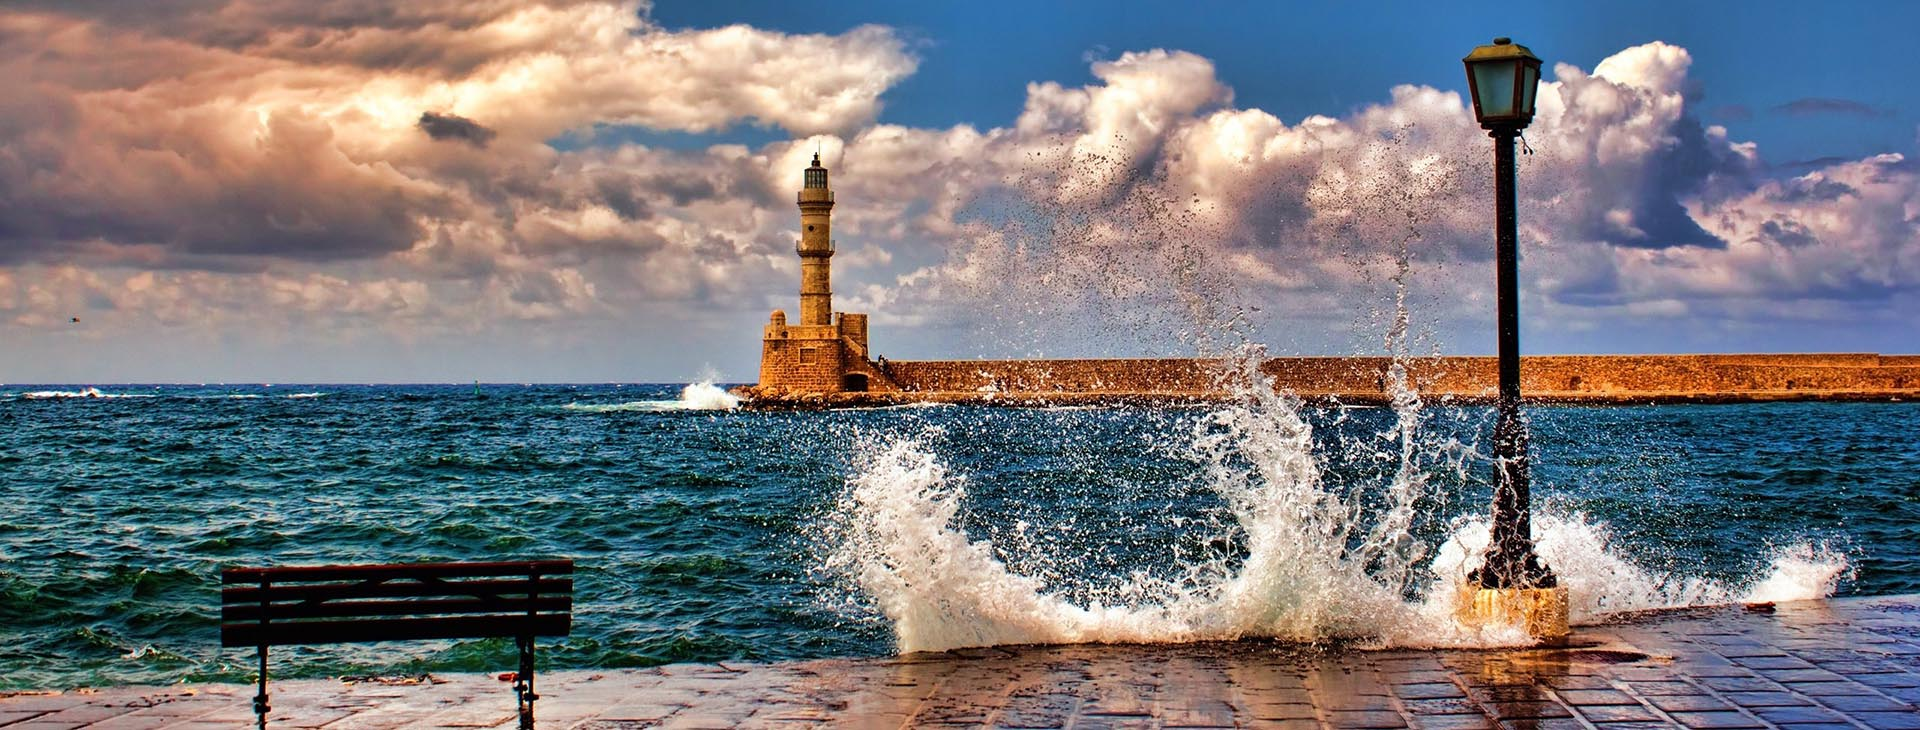 Town of Chania: The old harbour